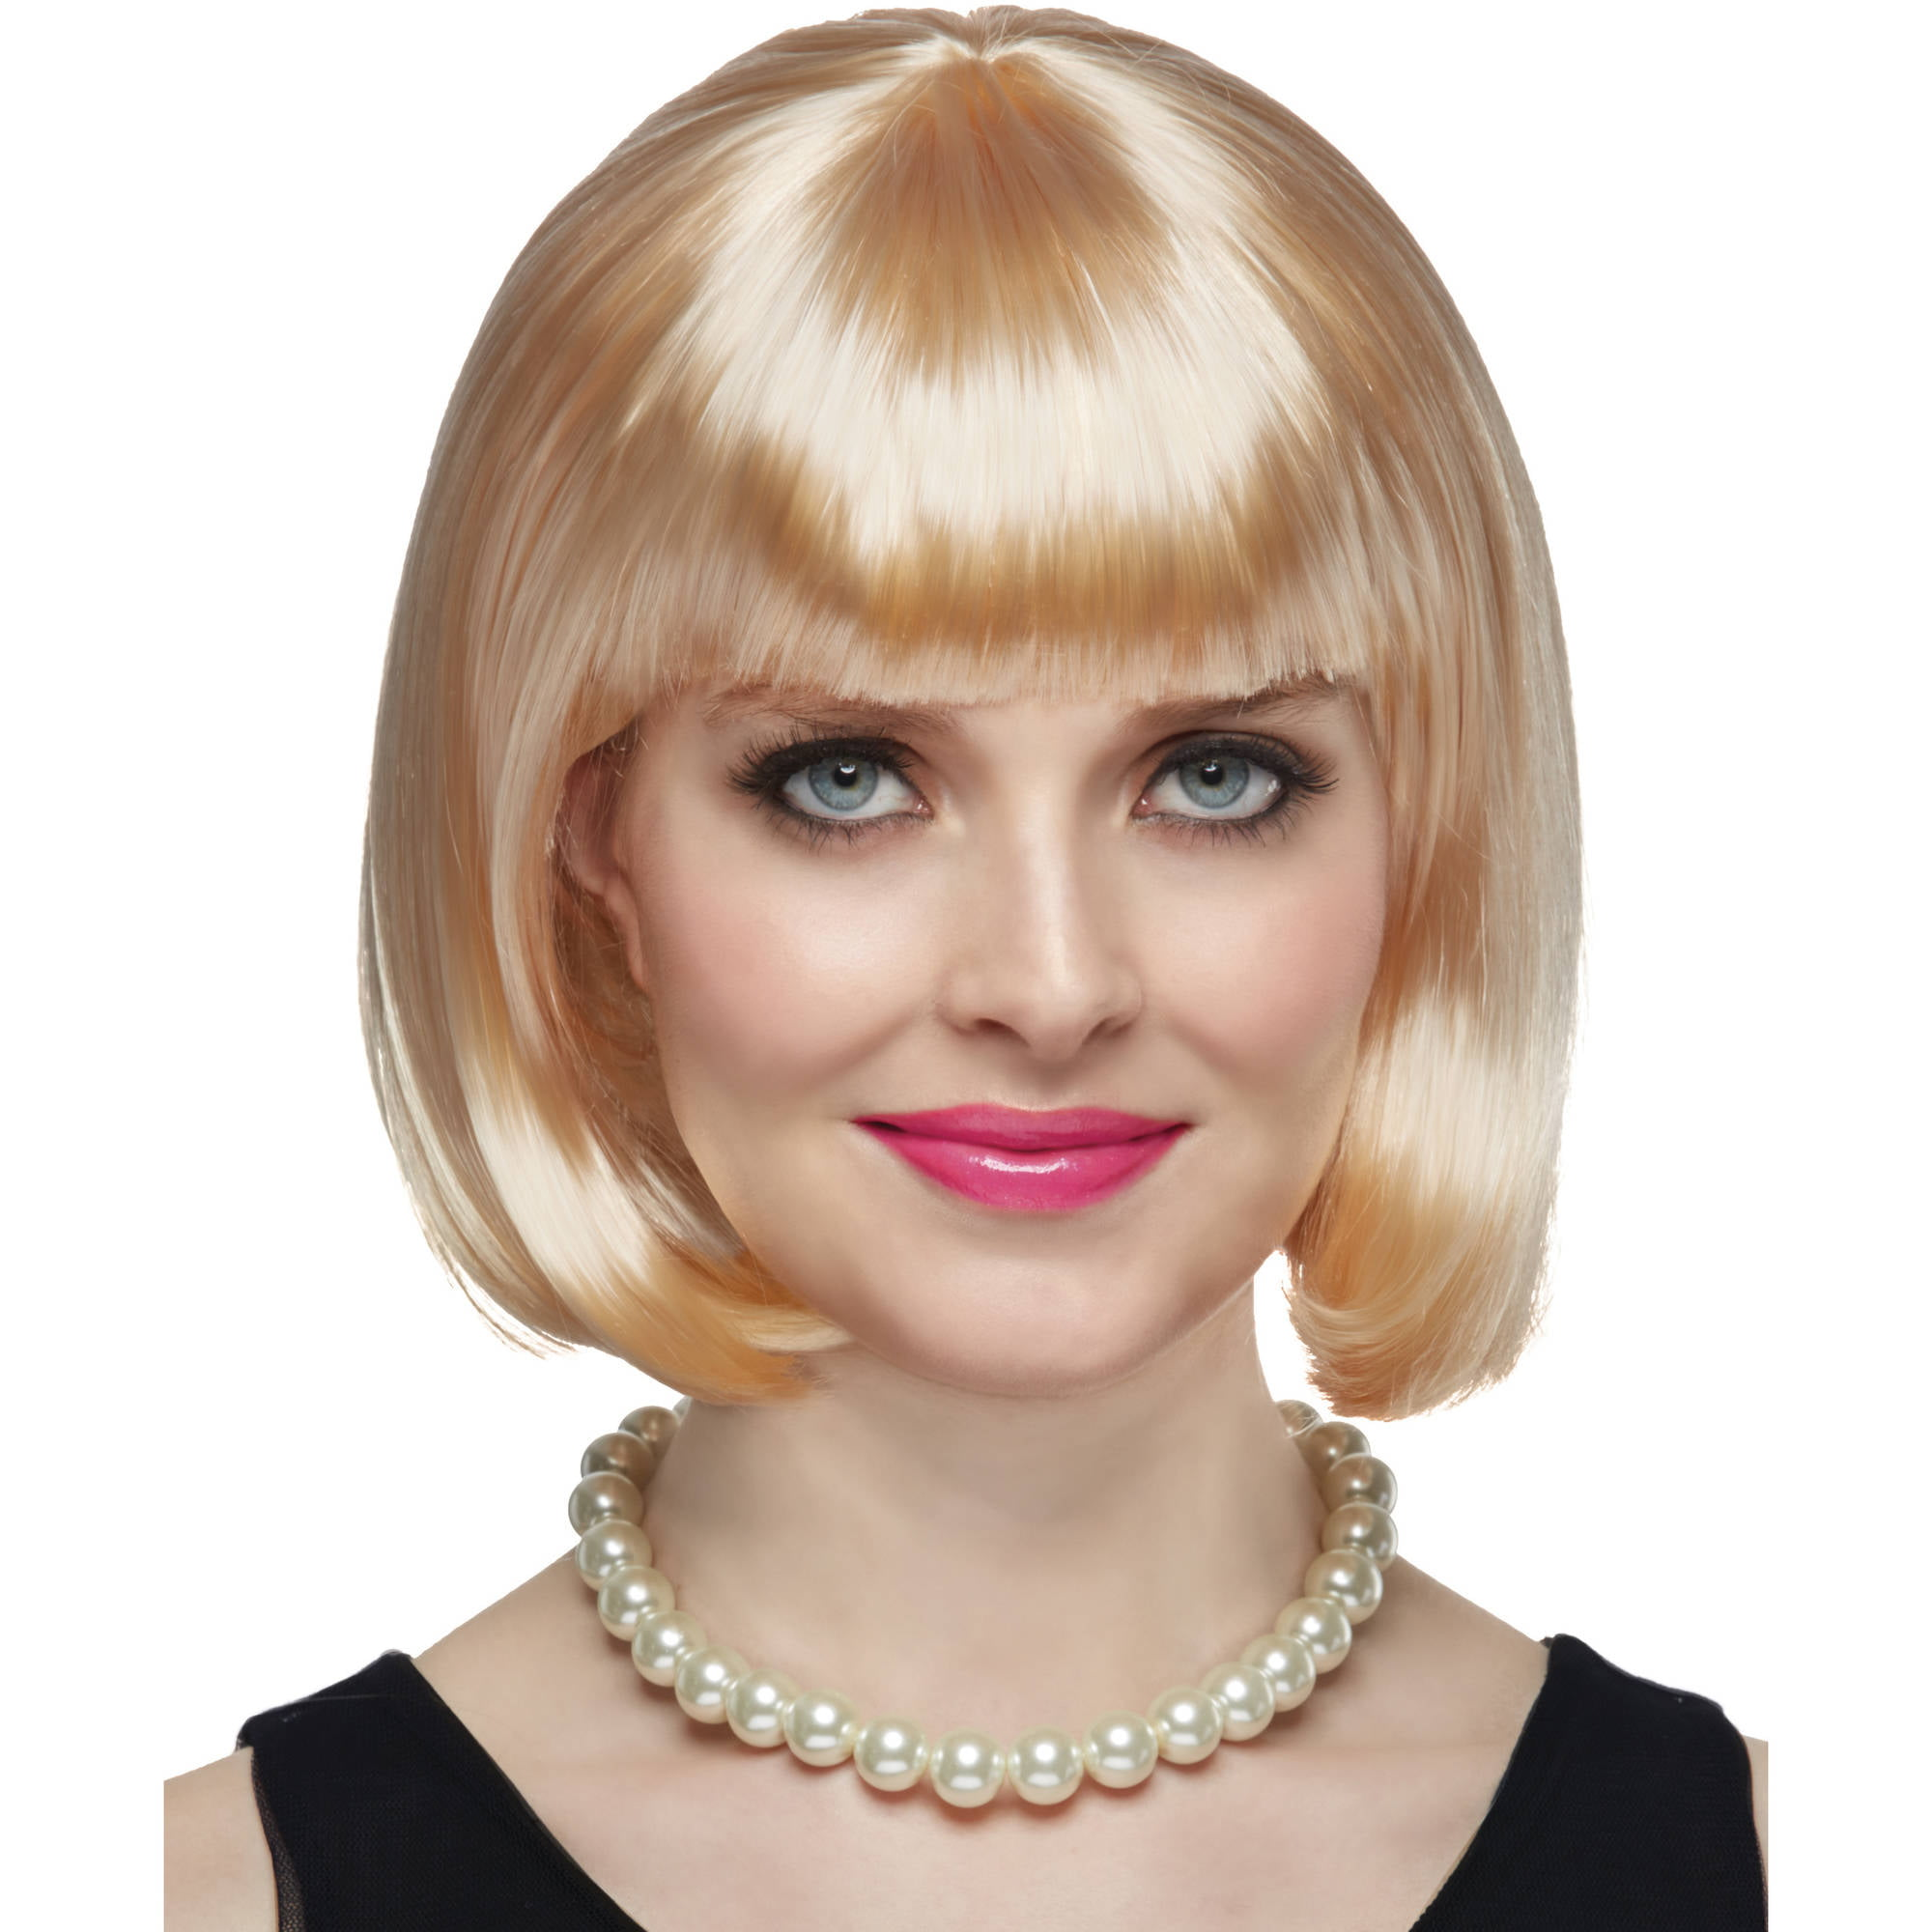 blonde short bob wig halloween costume accessory walmartcom - Halloween Costumes With Blonde Wig